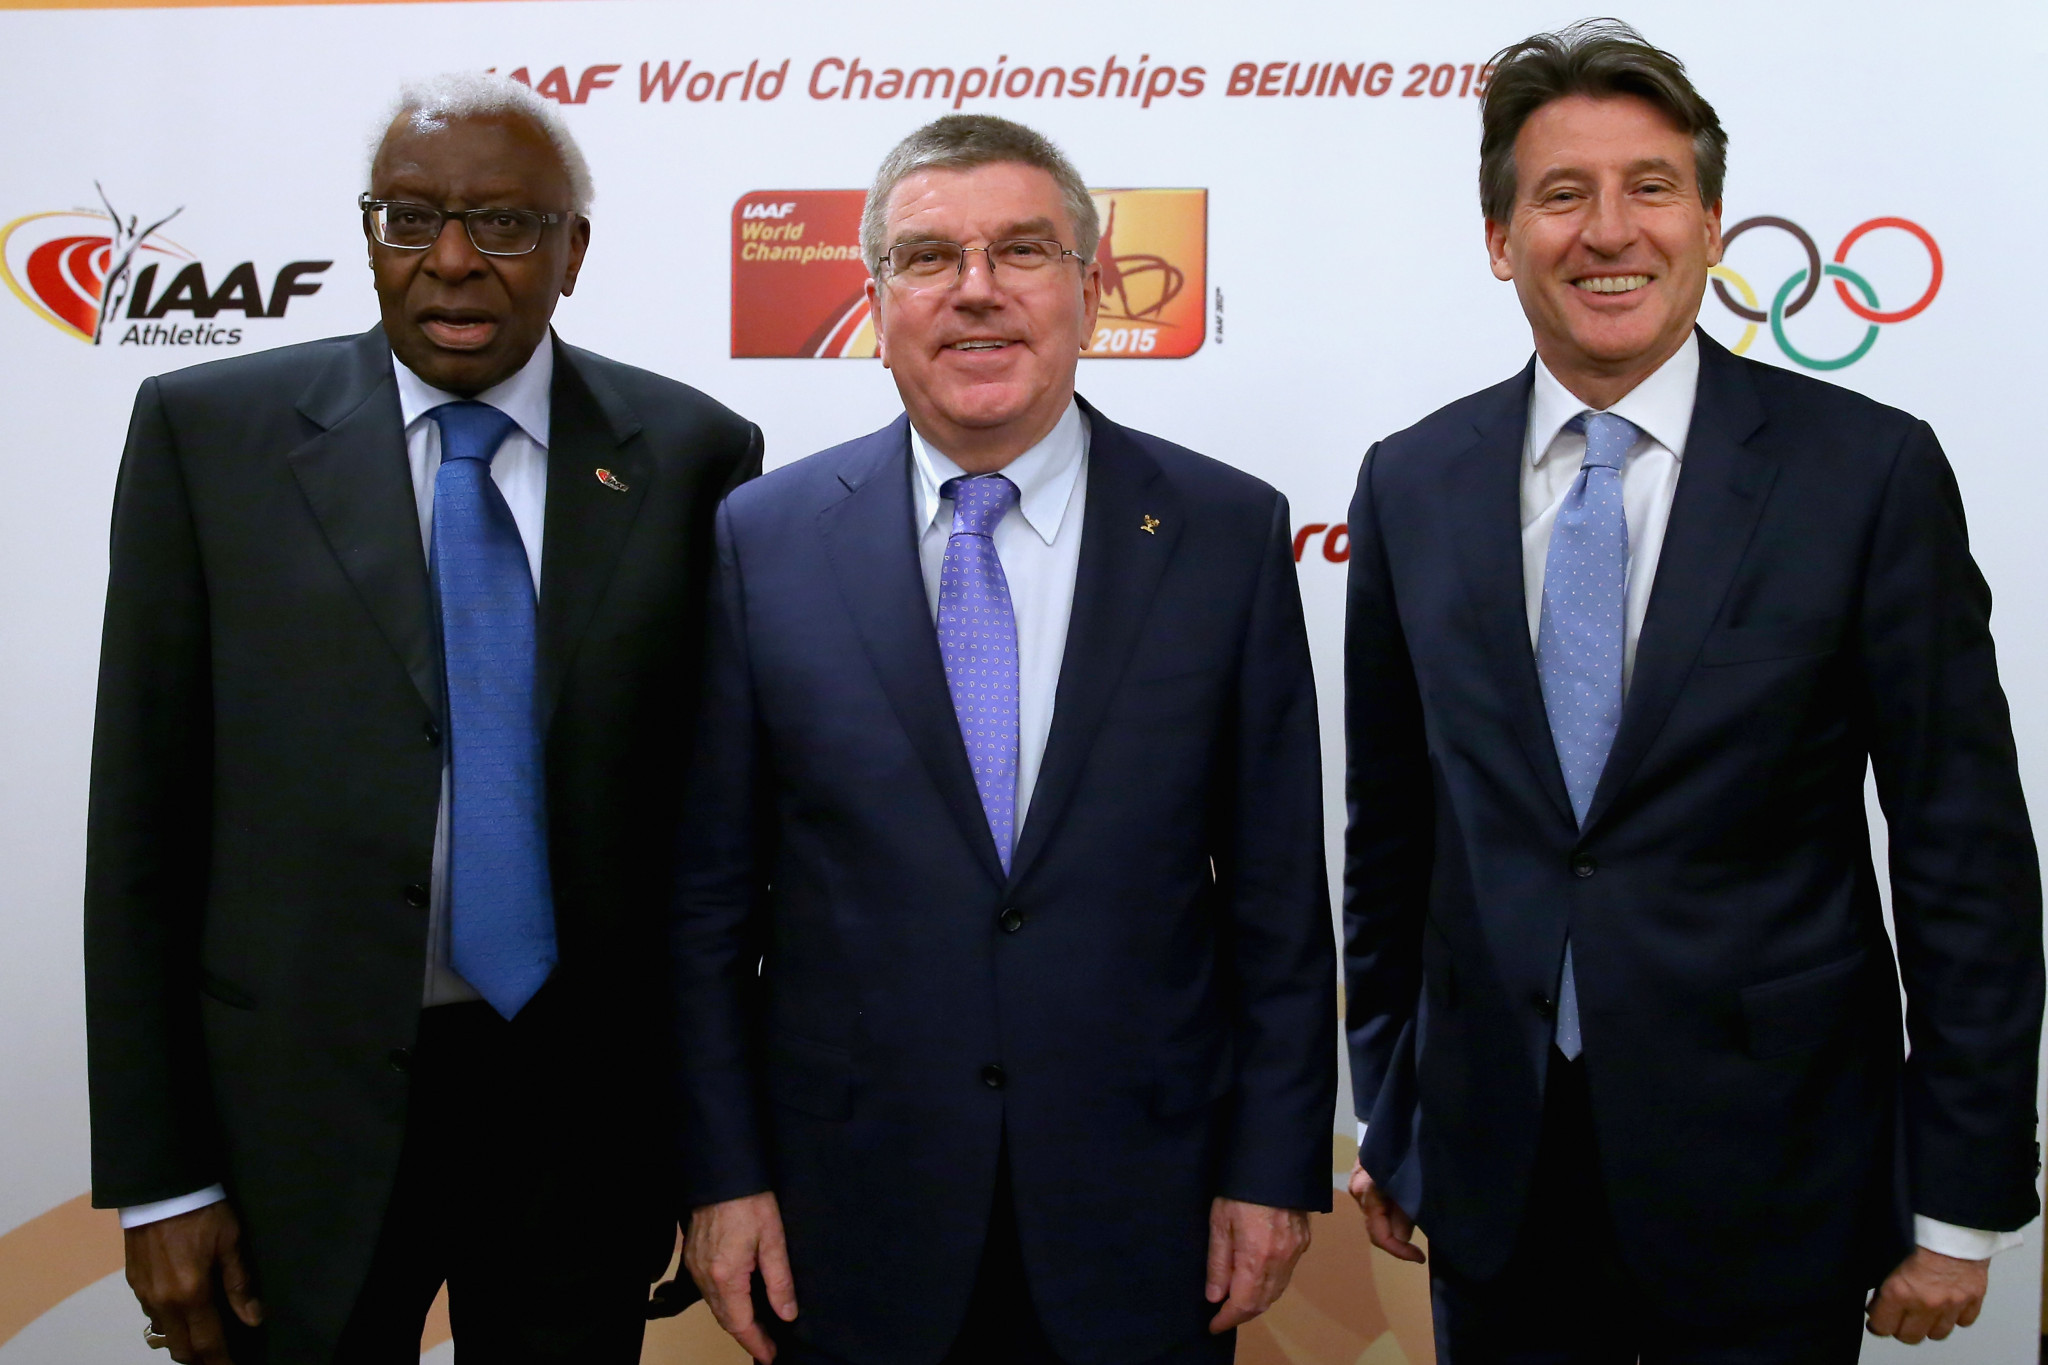 The example of the IAAF under Lamine Diack, left, was used to highlight sporting governance problems. His successor Sebastian Coe, right, attended the Olympic Summit chaired by Thomas Bach ©Getty Images